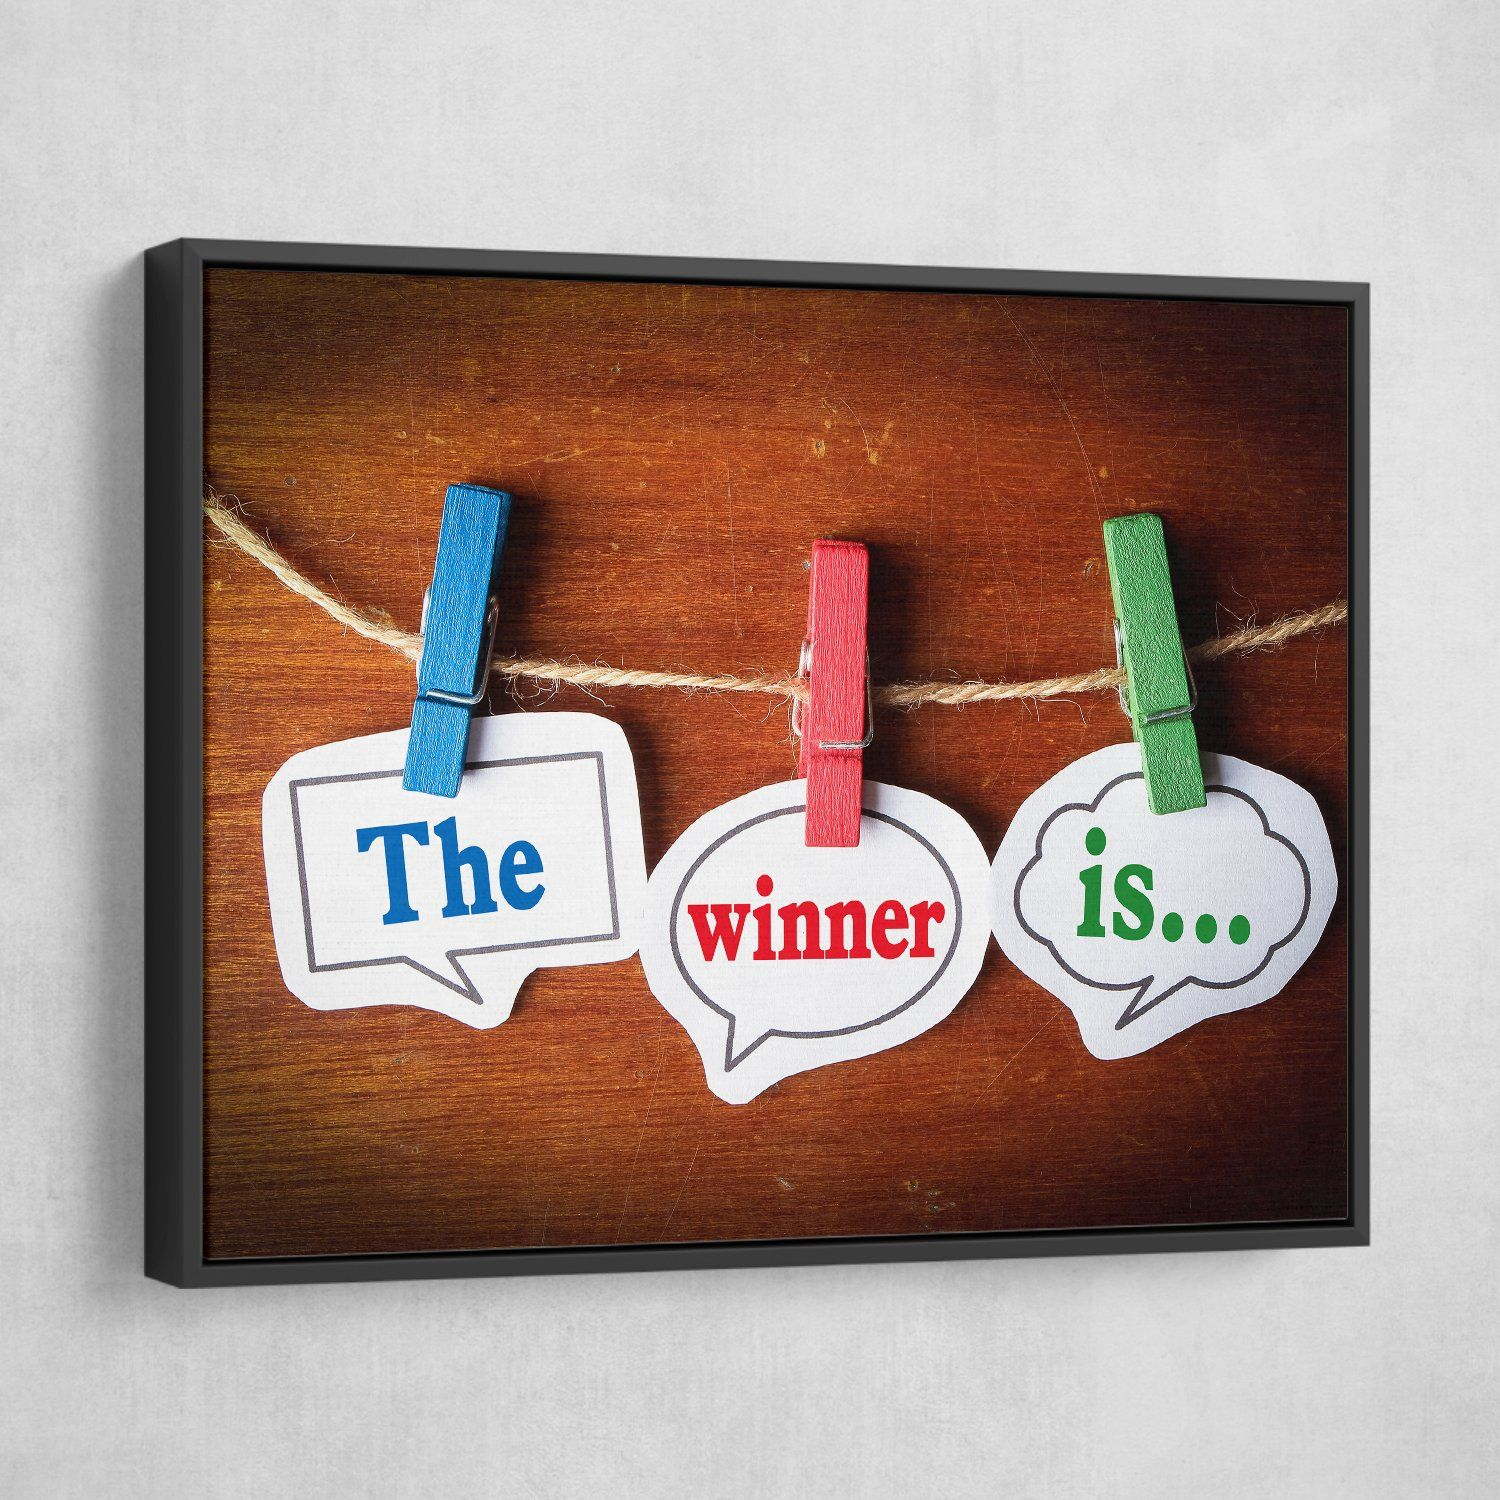 Winner wall art black frame